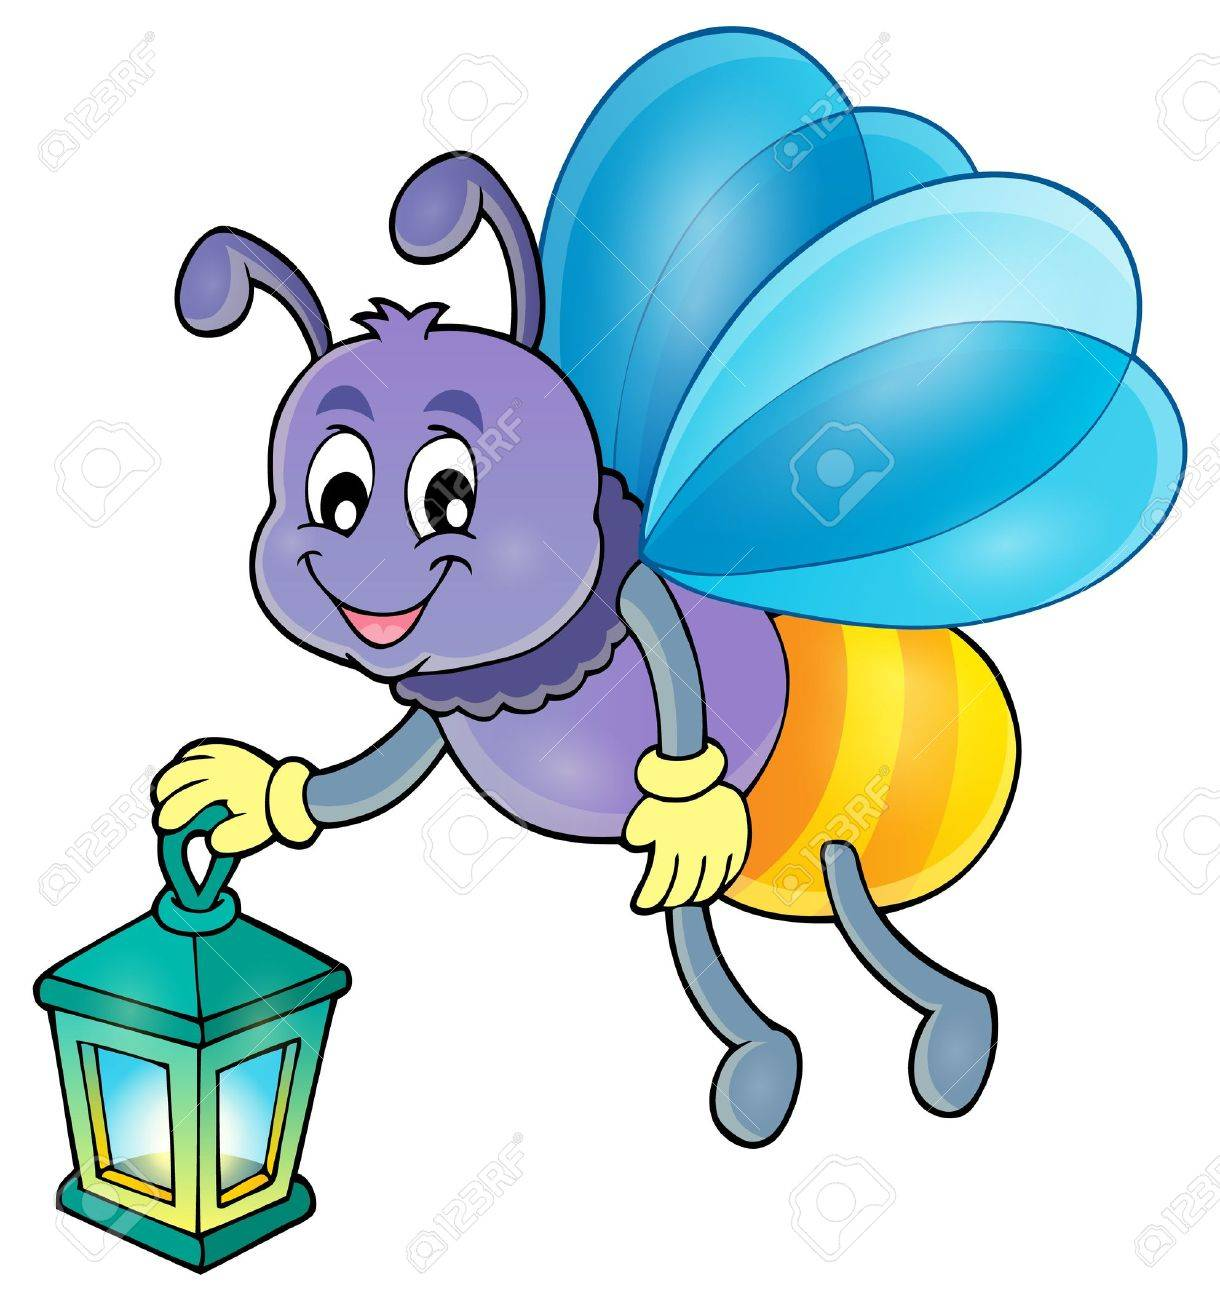 firefly with lantern vector illustration royalty free cliparts rh 123rf com